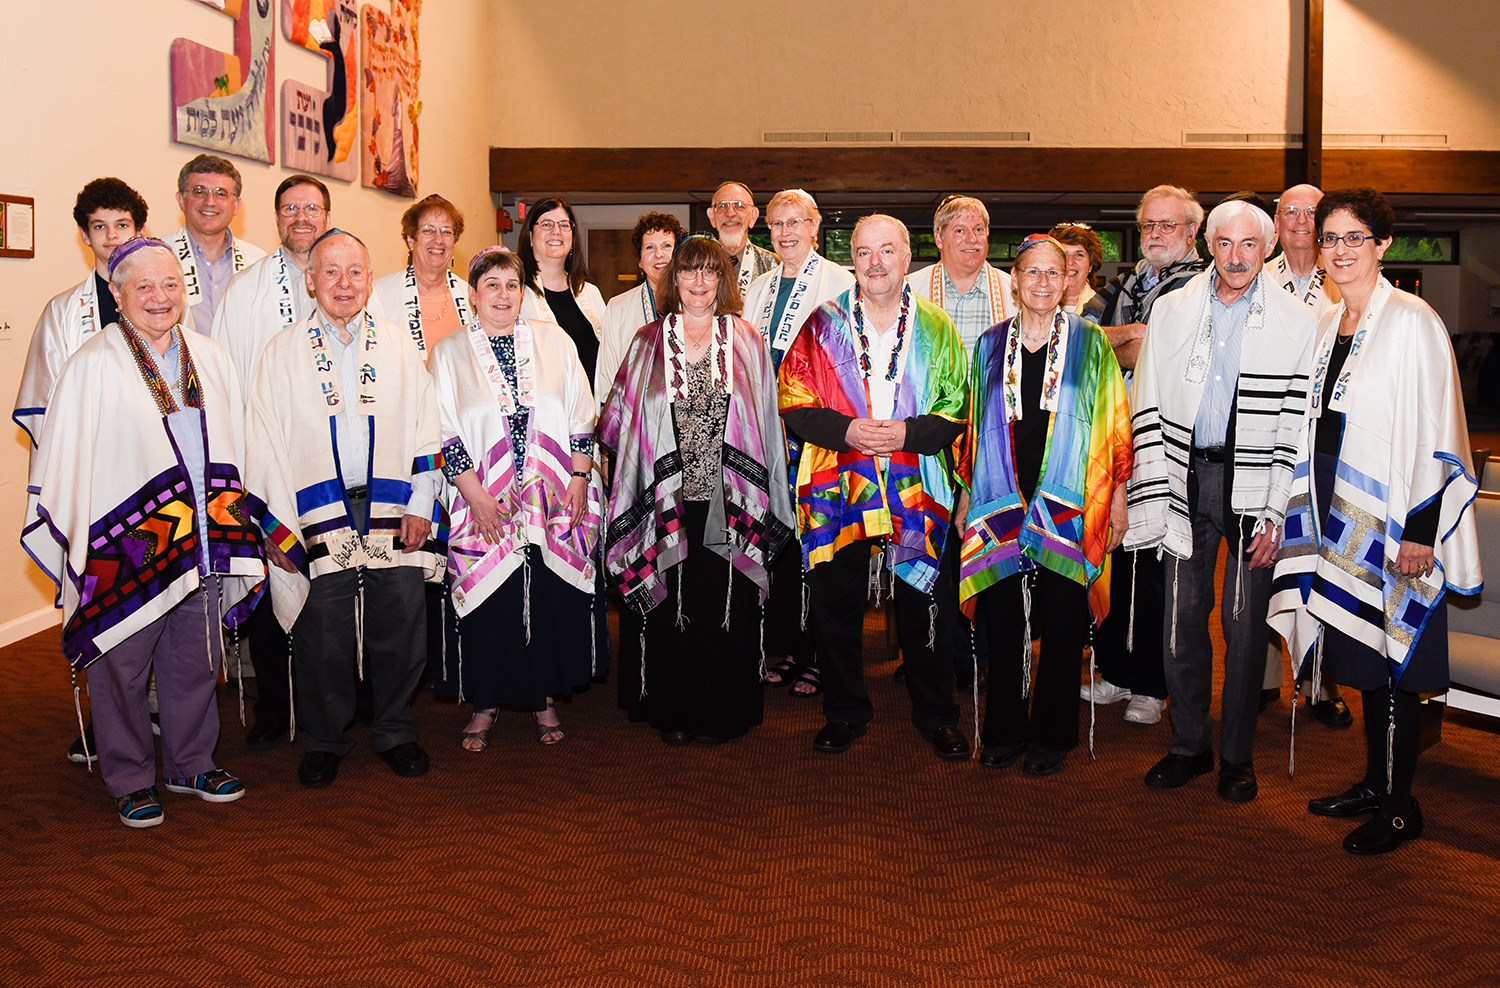 Tallit-group of 20 photo by Larry M Levine